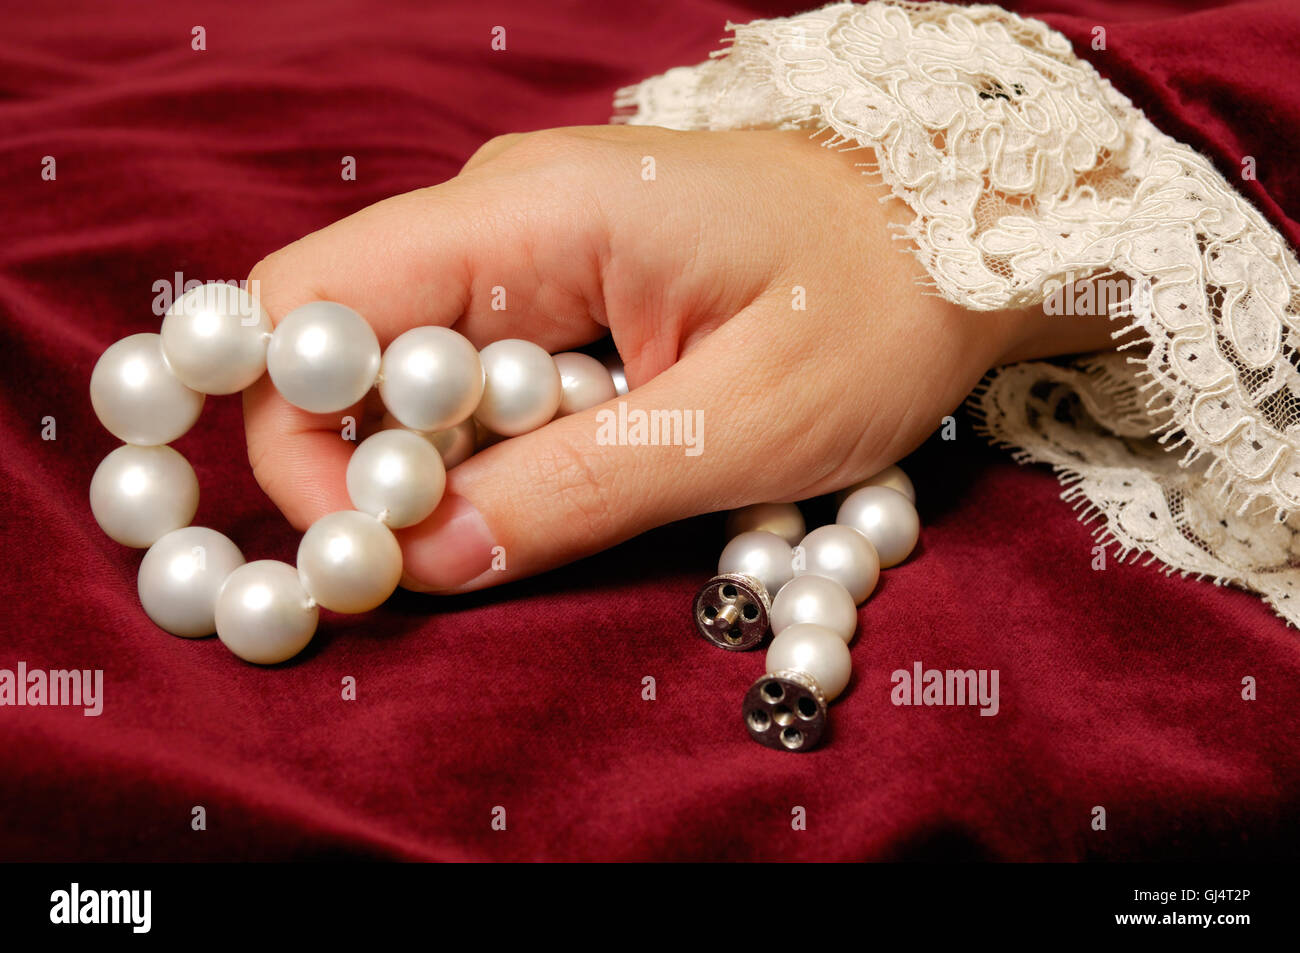 Holding a pearls necklace - Stock Image